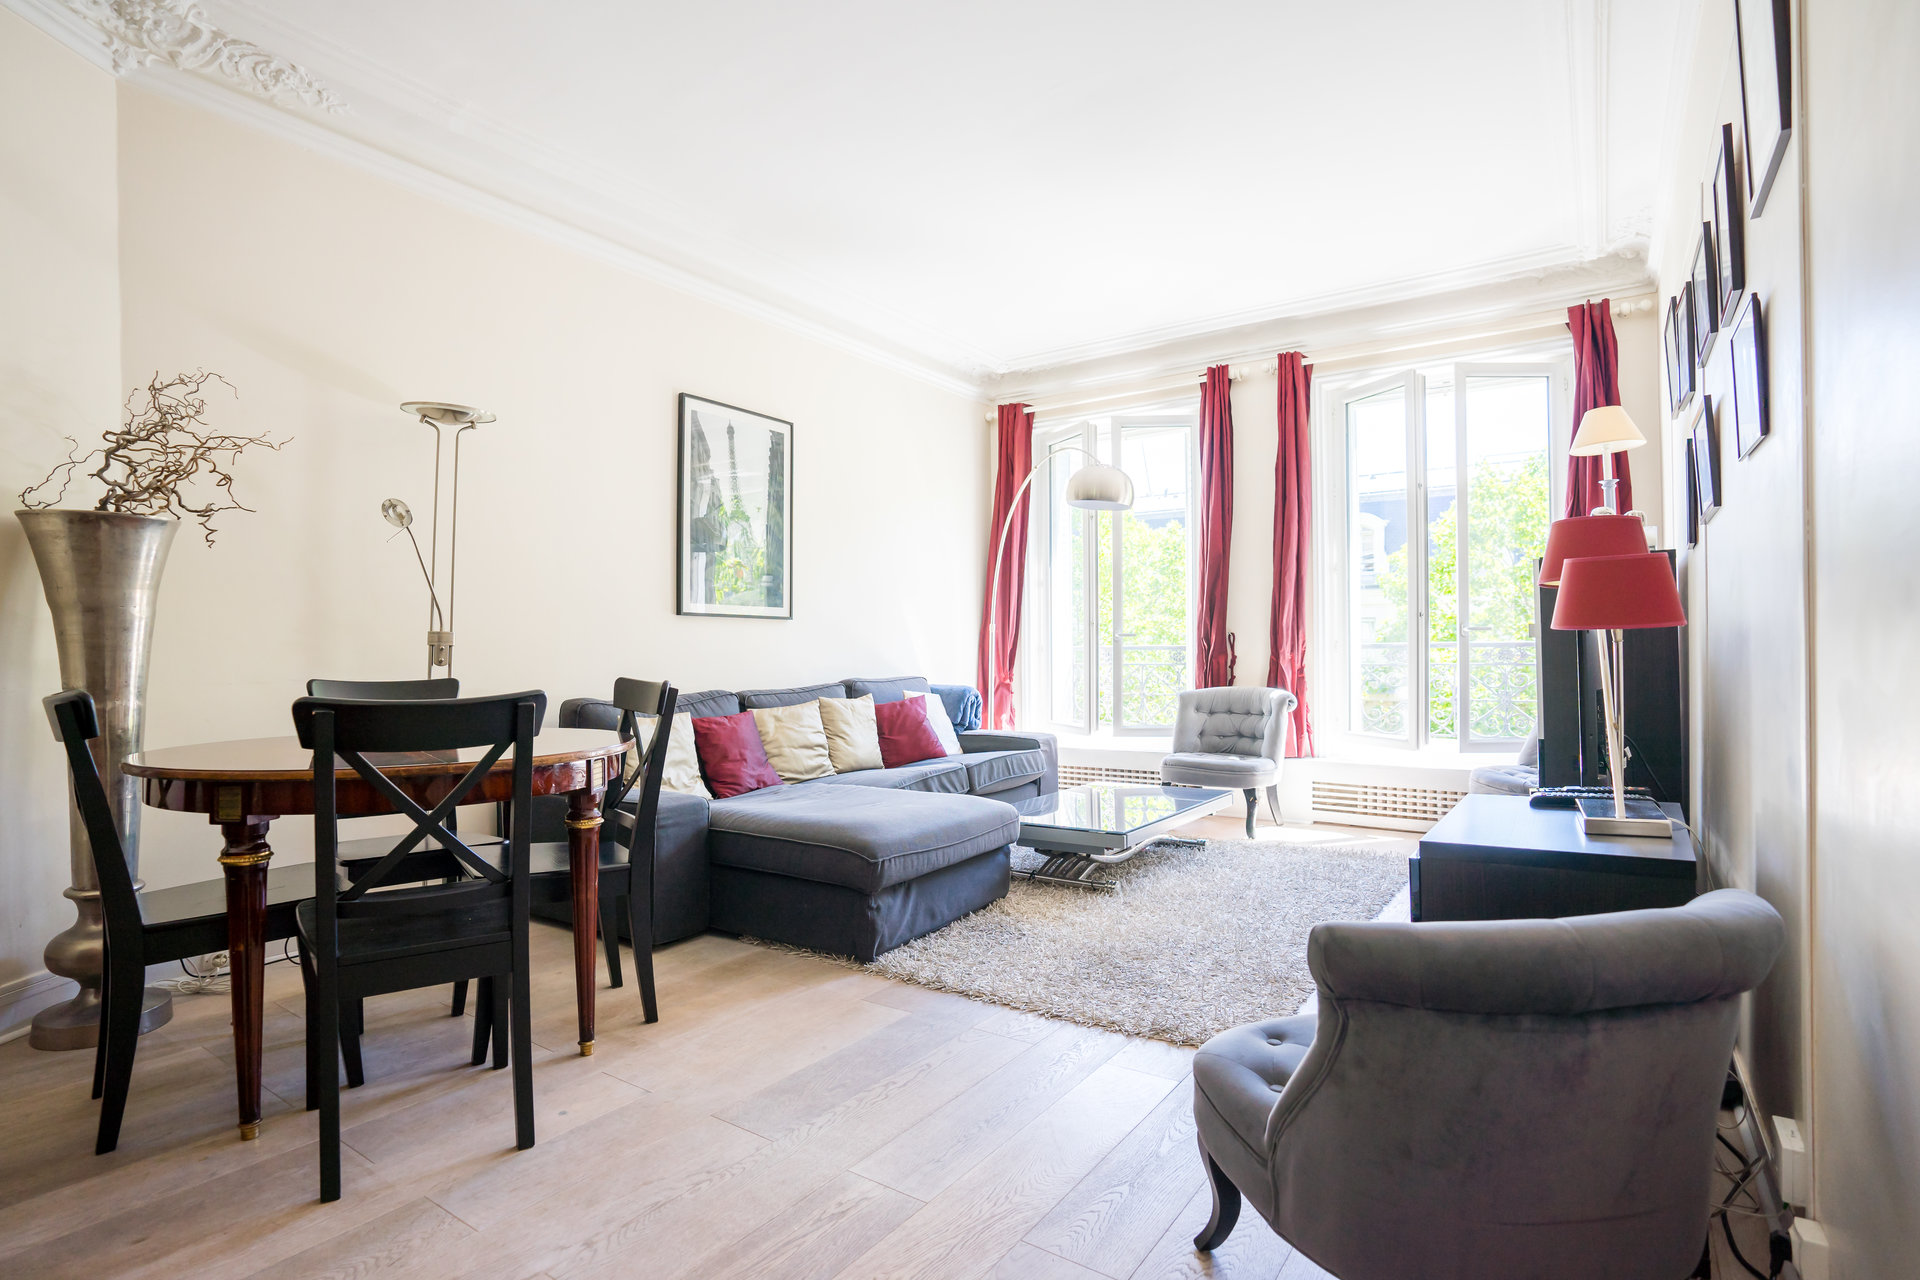 Sale Apartment - Paris 7th (Paris 7ème) Gros-Caillou